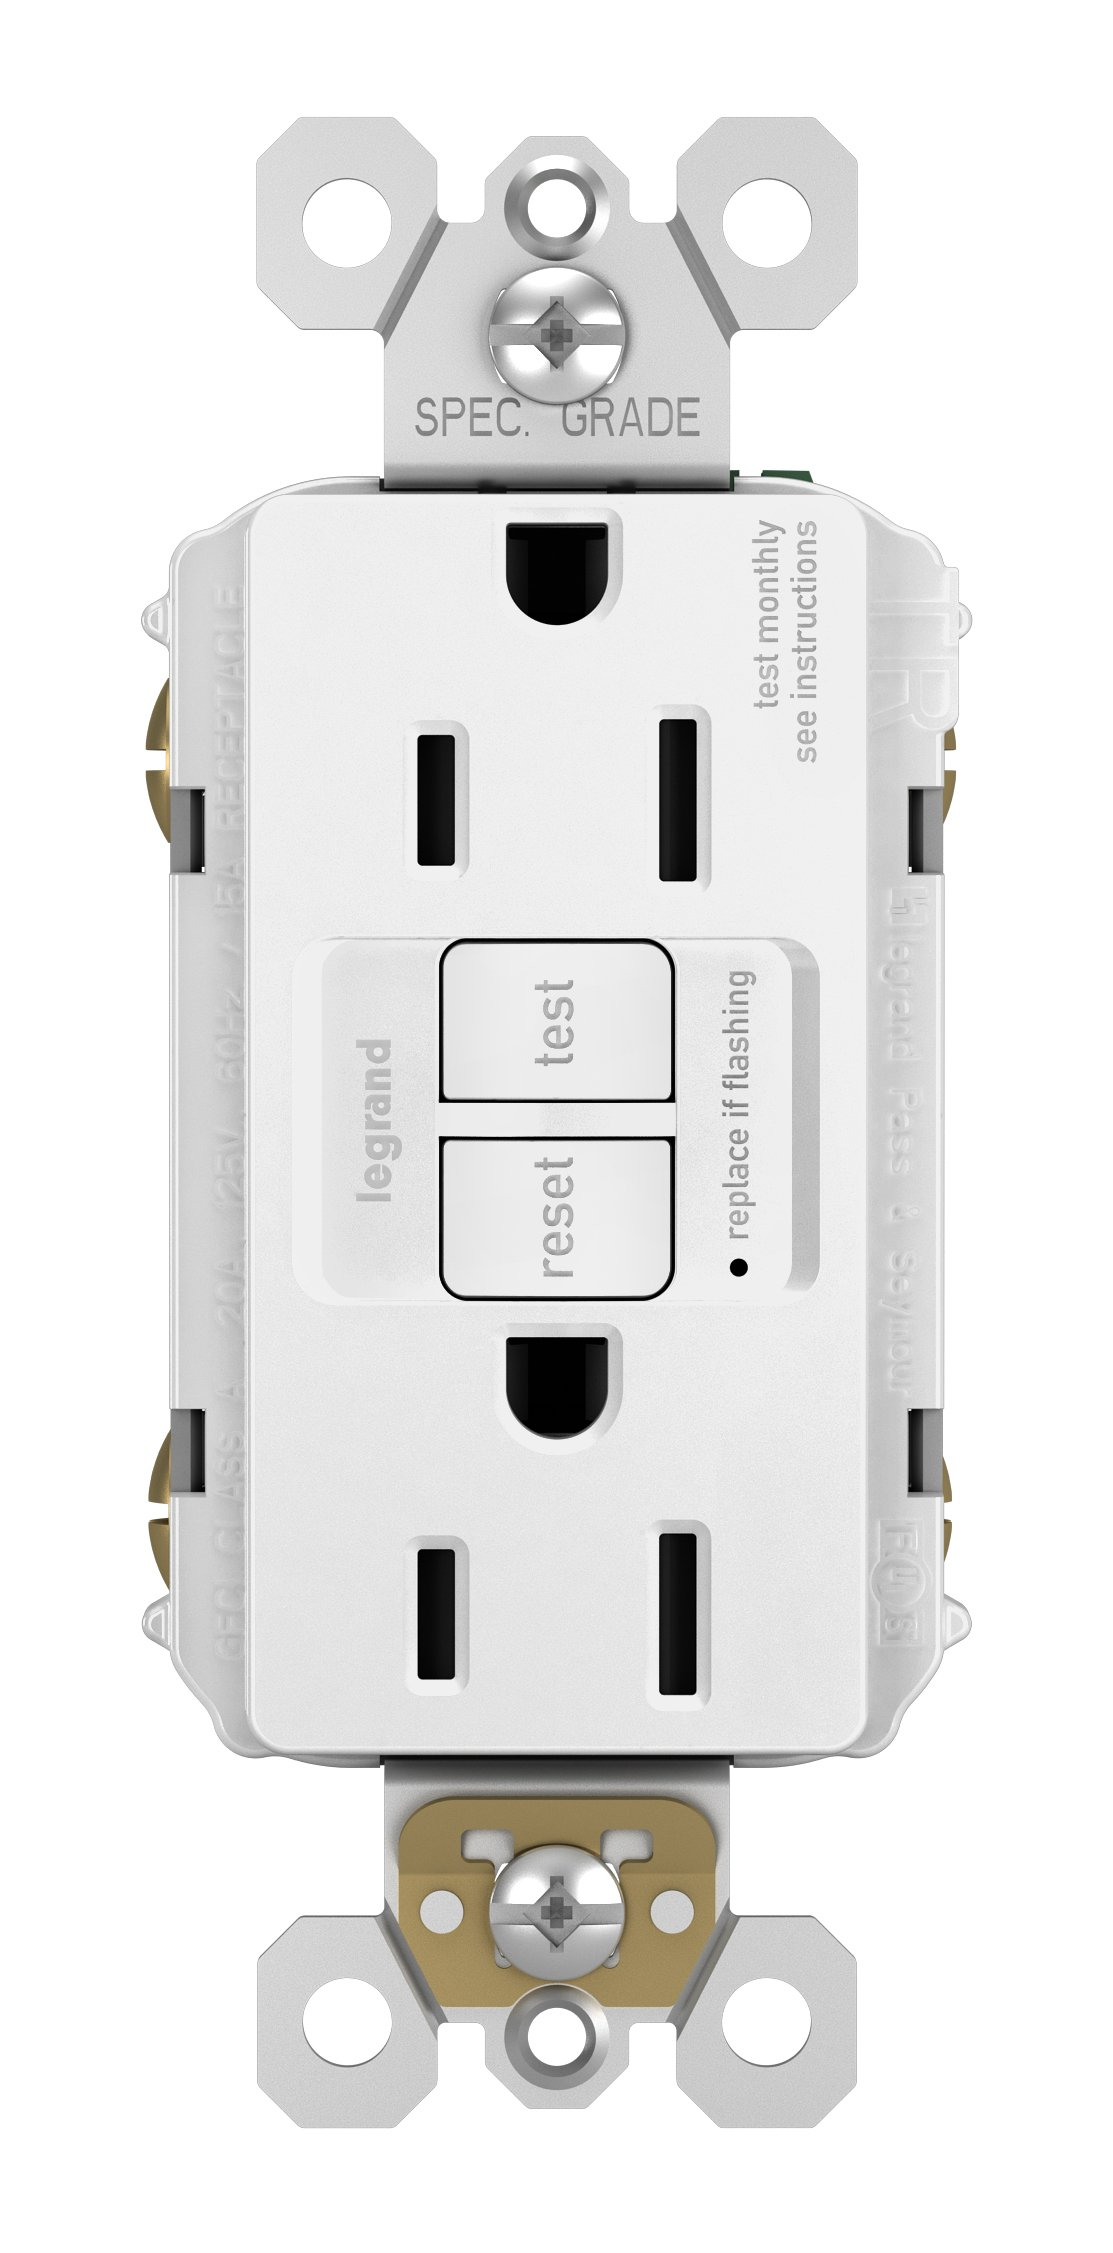 Legrand - Pass & Seymour Radiant 1597WCCD12 15 Amp Self-Test Gfci Outlet, White